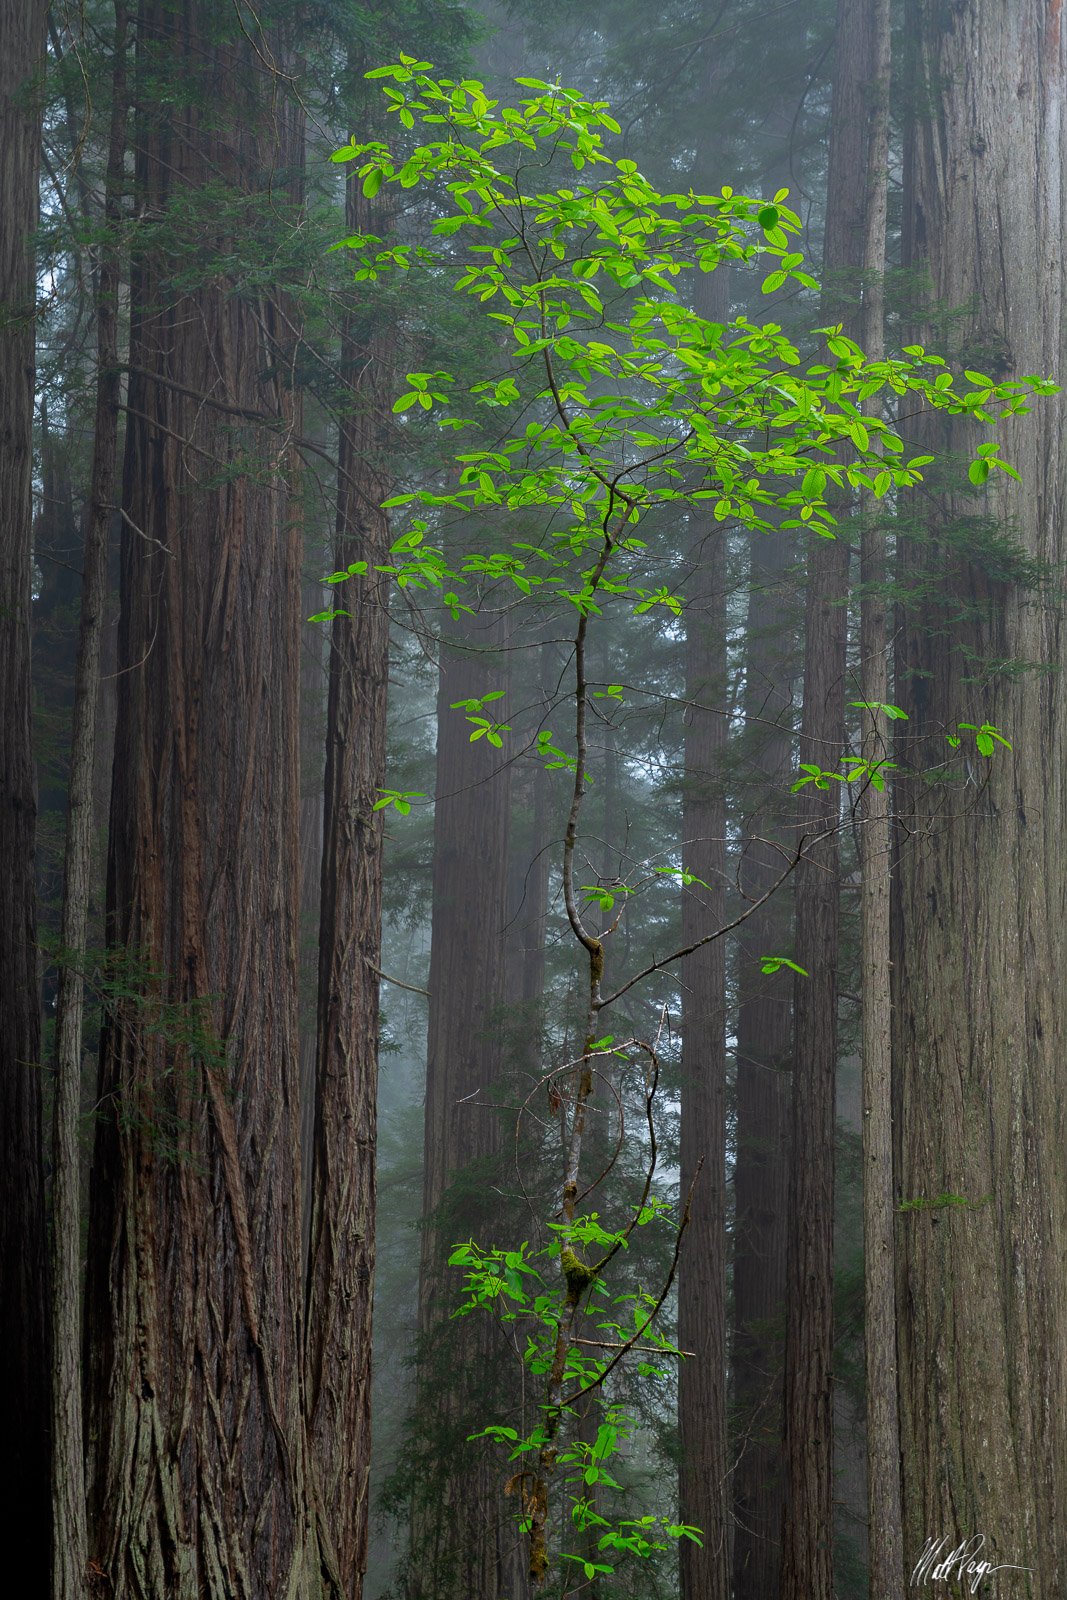 Truth be told, making a decent photograph in the Redwoods of California is very difficult to accomplish. There's an incredible...